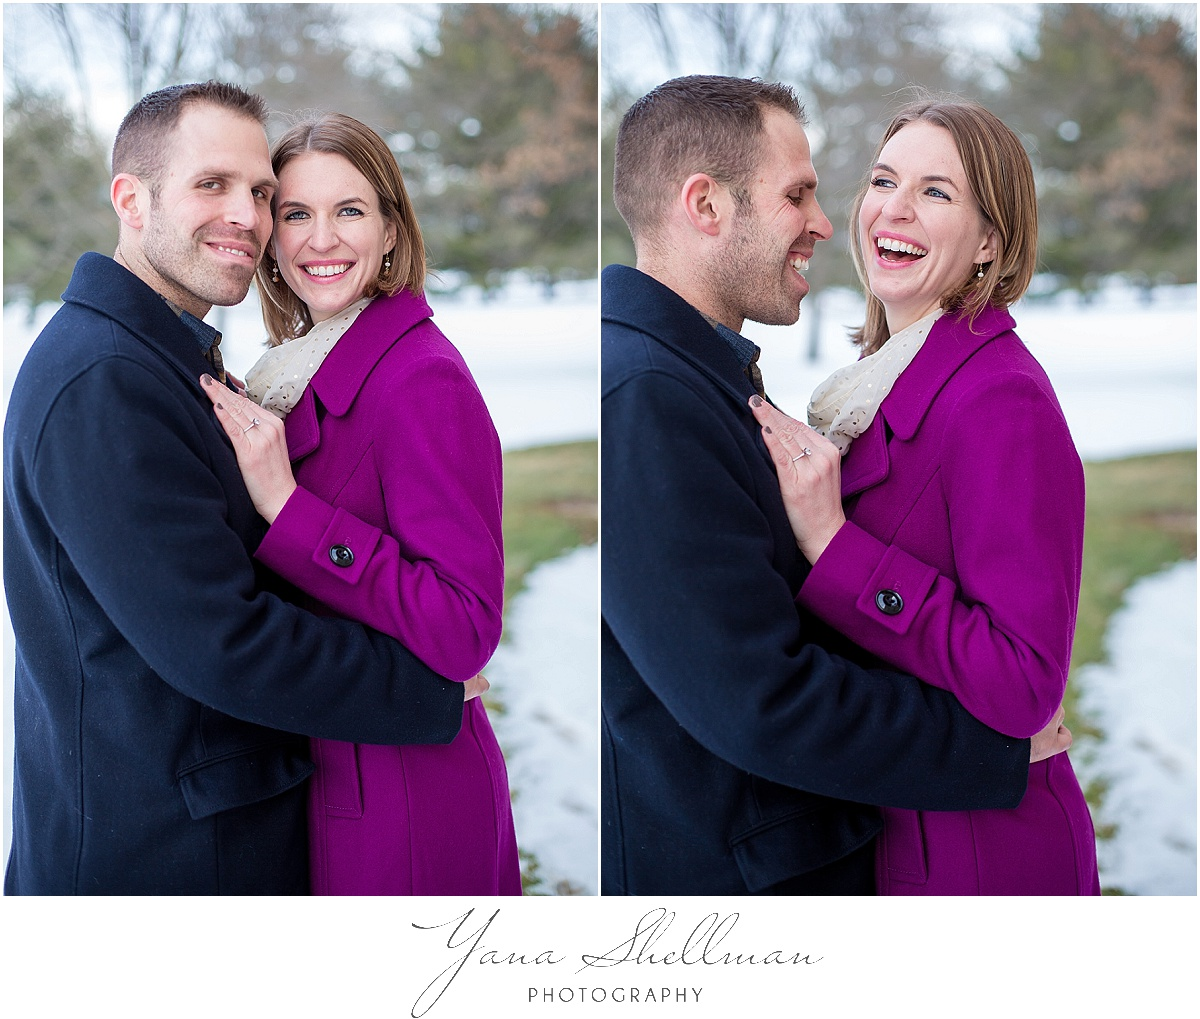 Valley Forge Park Engagement session by photojournalistic Princeton Wedding Photographer